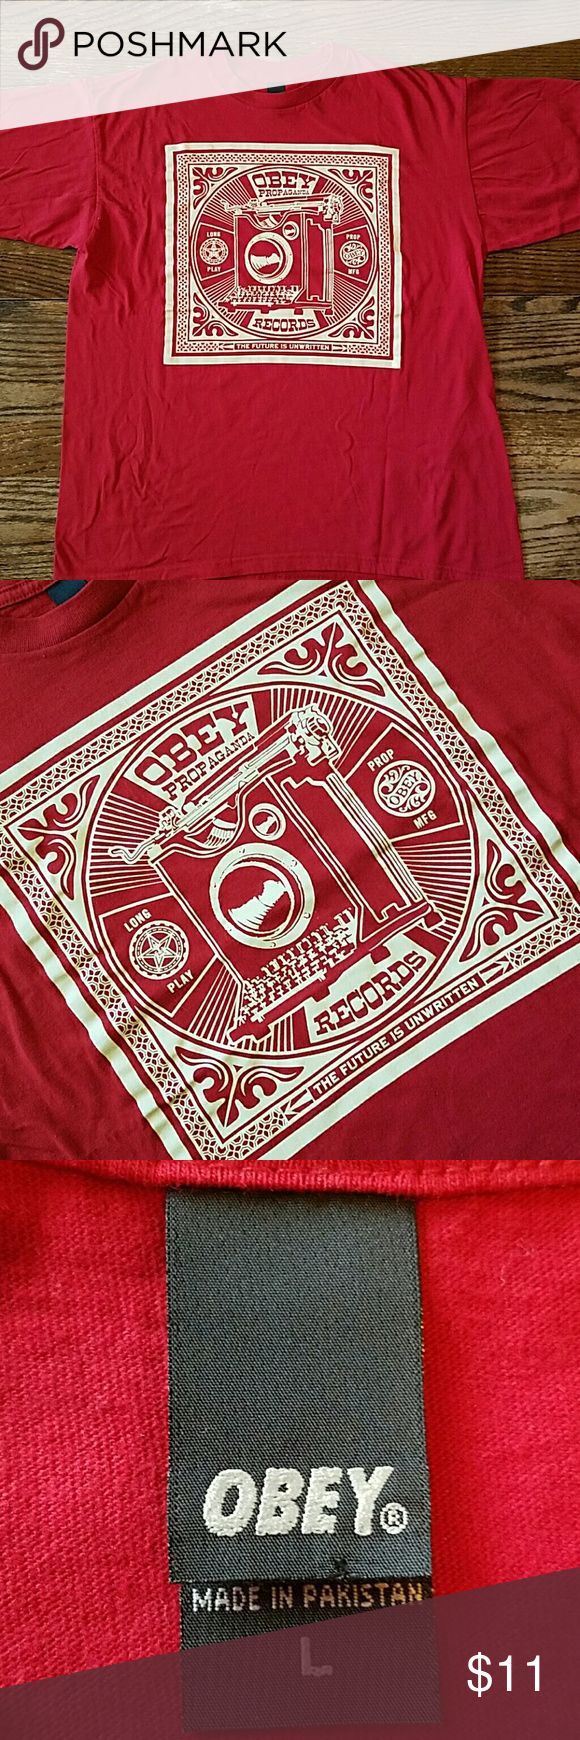 The Future Is Unwritten Red short sleeved cotton tee with typewriter graphics. Obey Shirts Tees - Short Sleeve